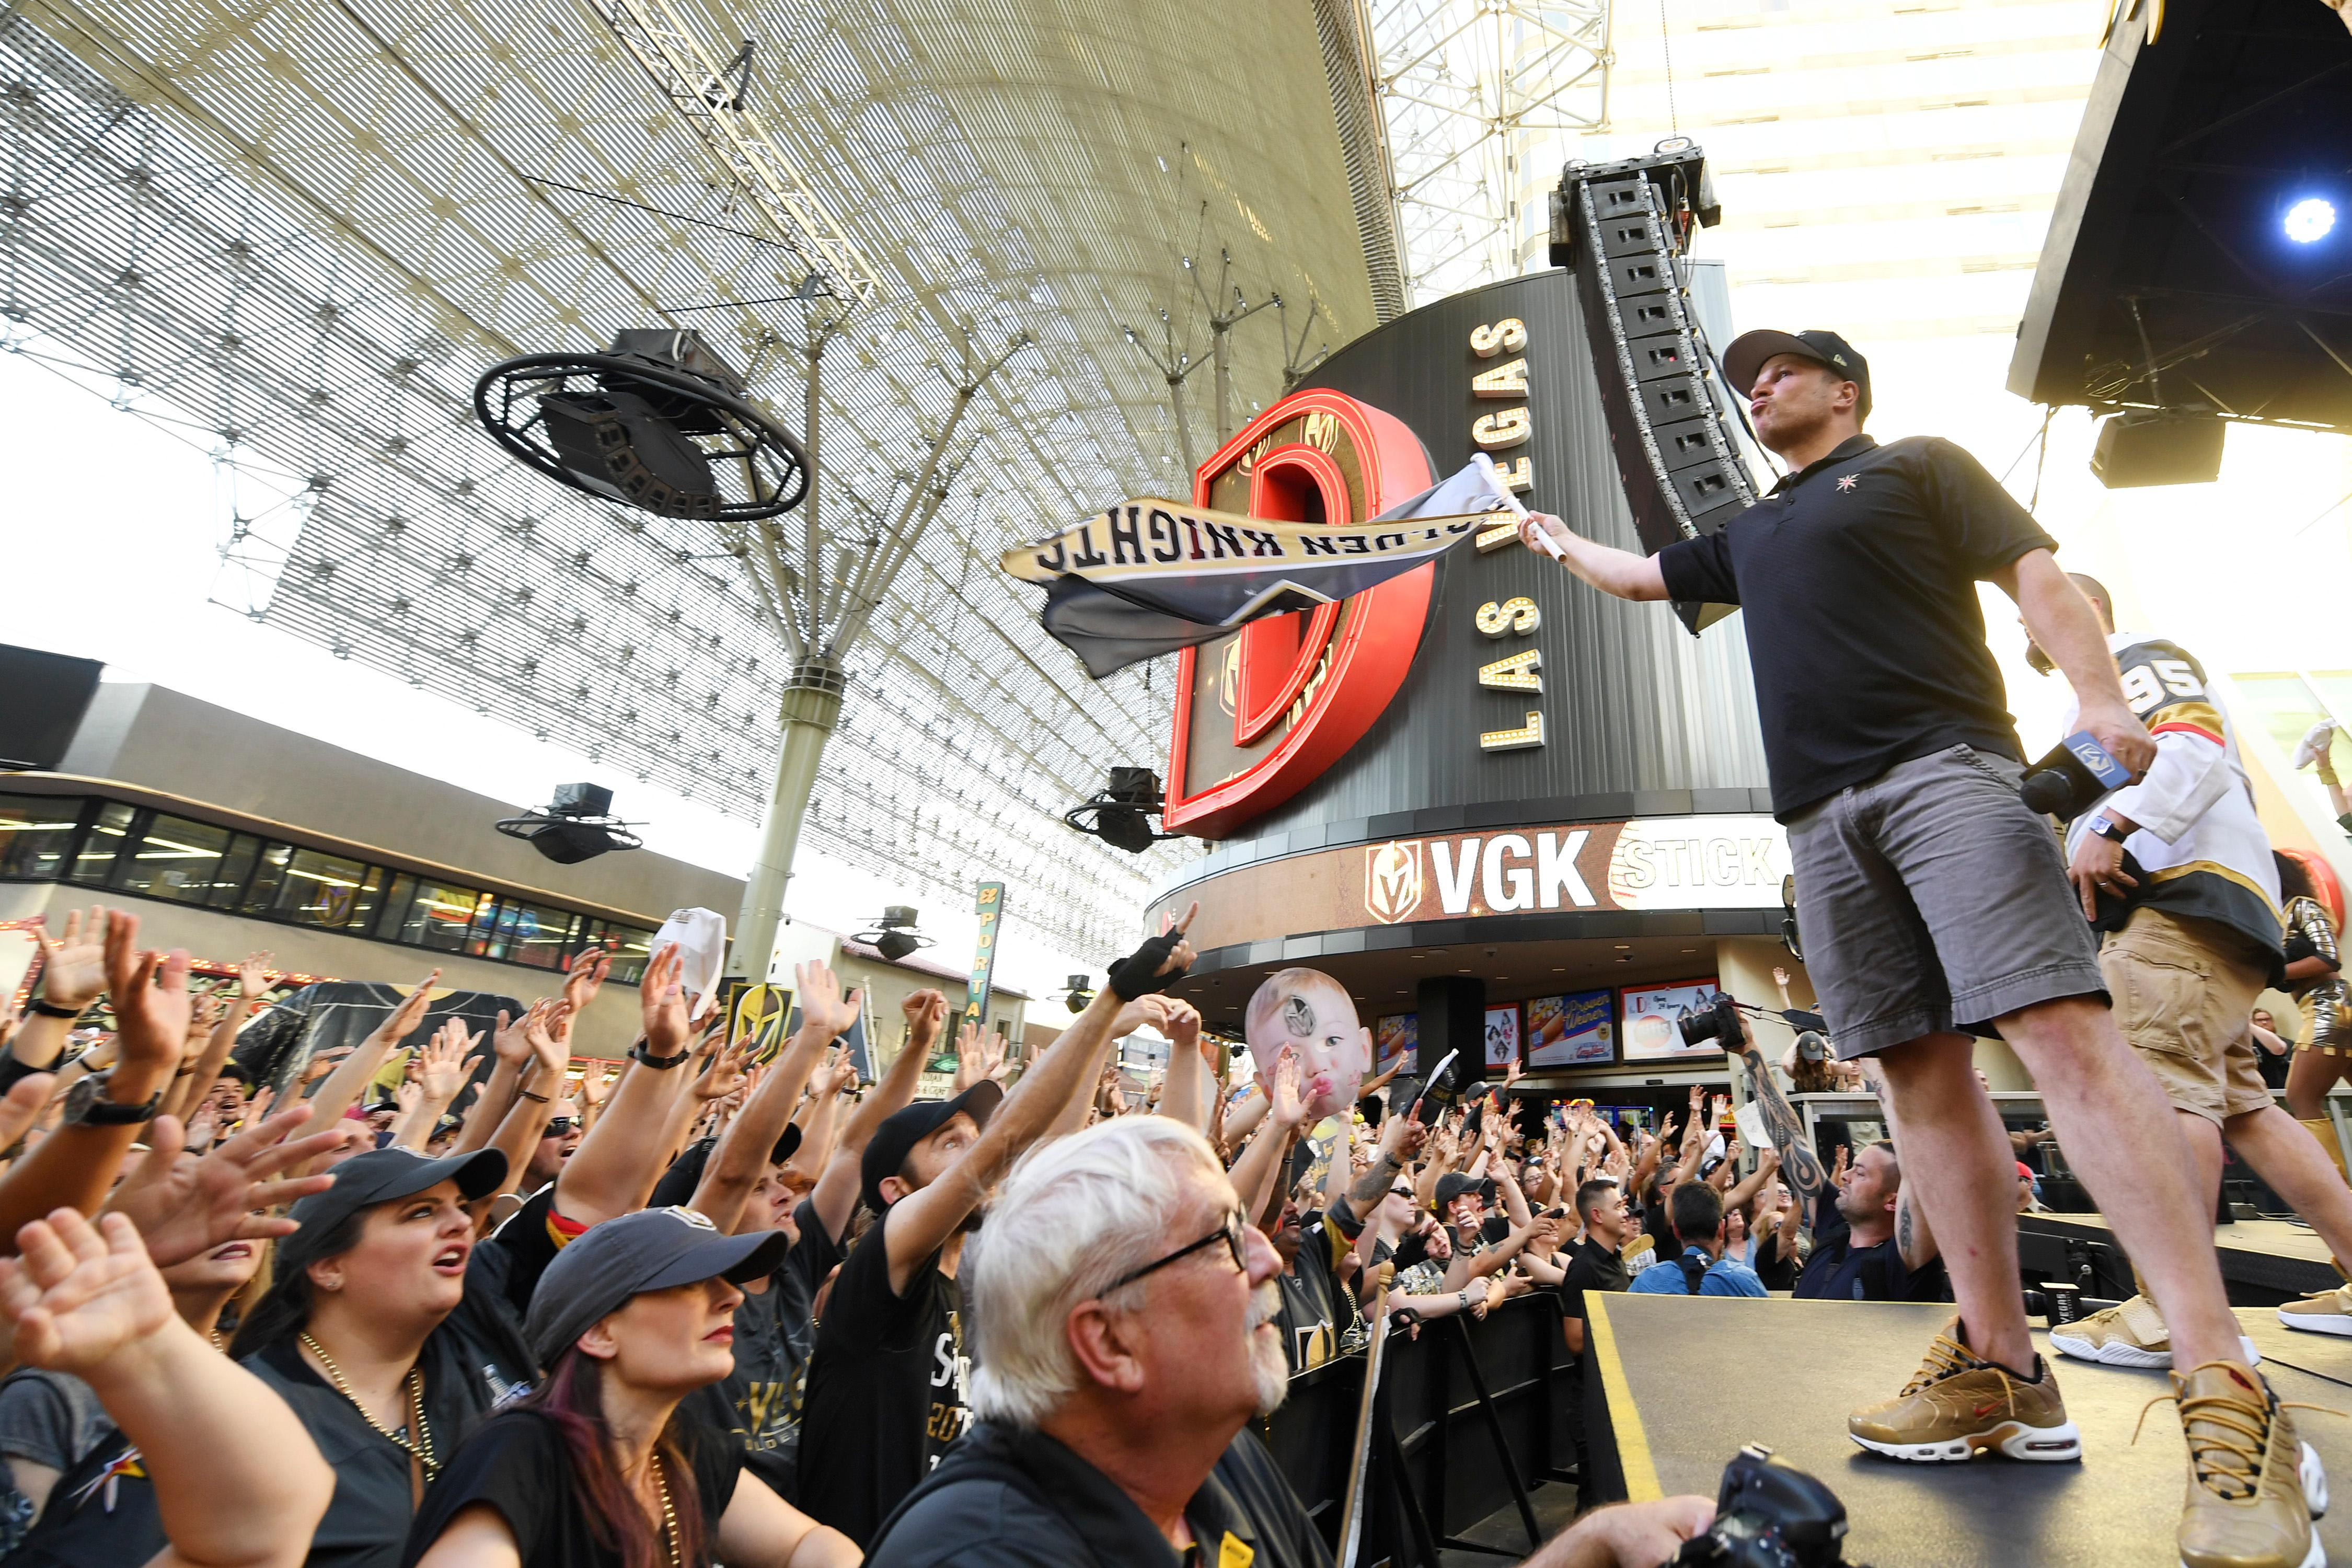 Arena announcer Mark Shunock waves a flag during a Vegas Golden Knights Stick Salute to Vegas fan appreciation rally at the Fremont Street Experience Wednesday, June 13, 2018. CREDIT: Sam Morris/Las Vegas News Bureau